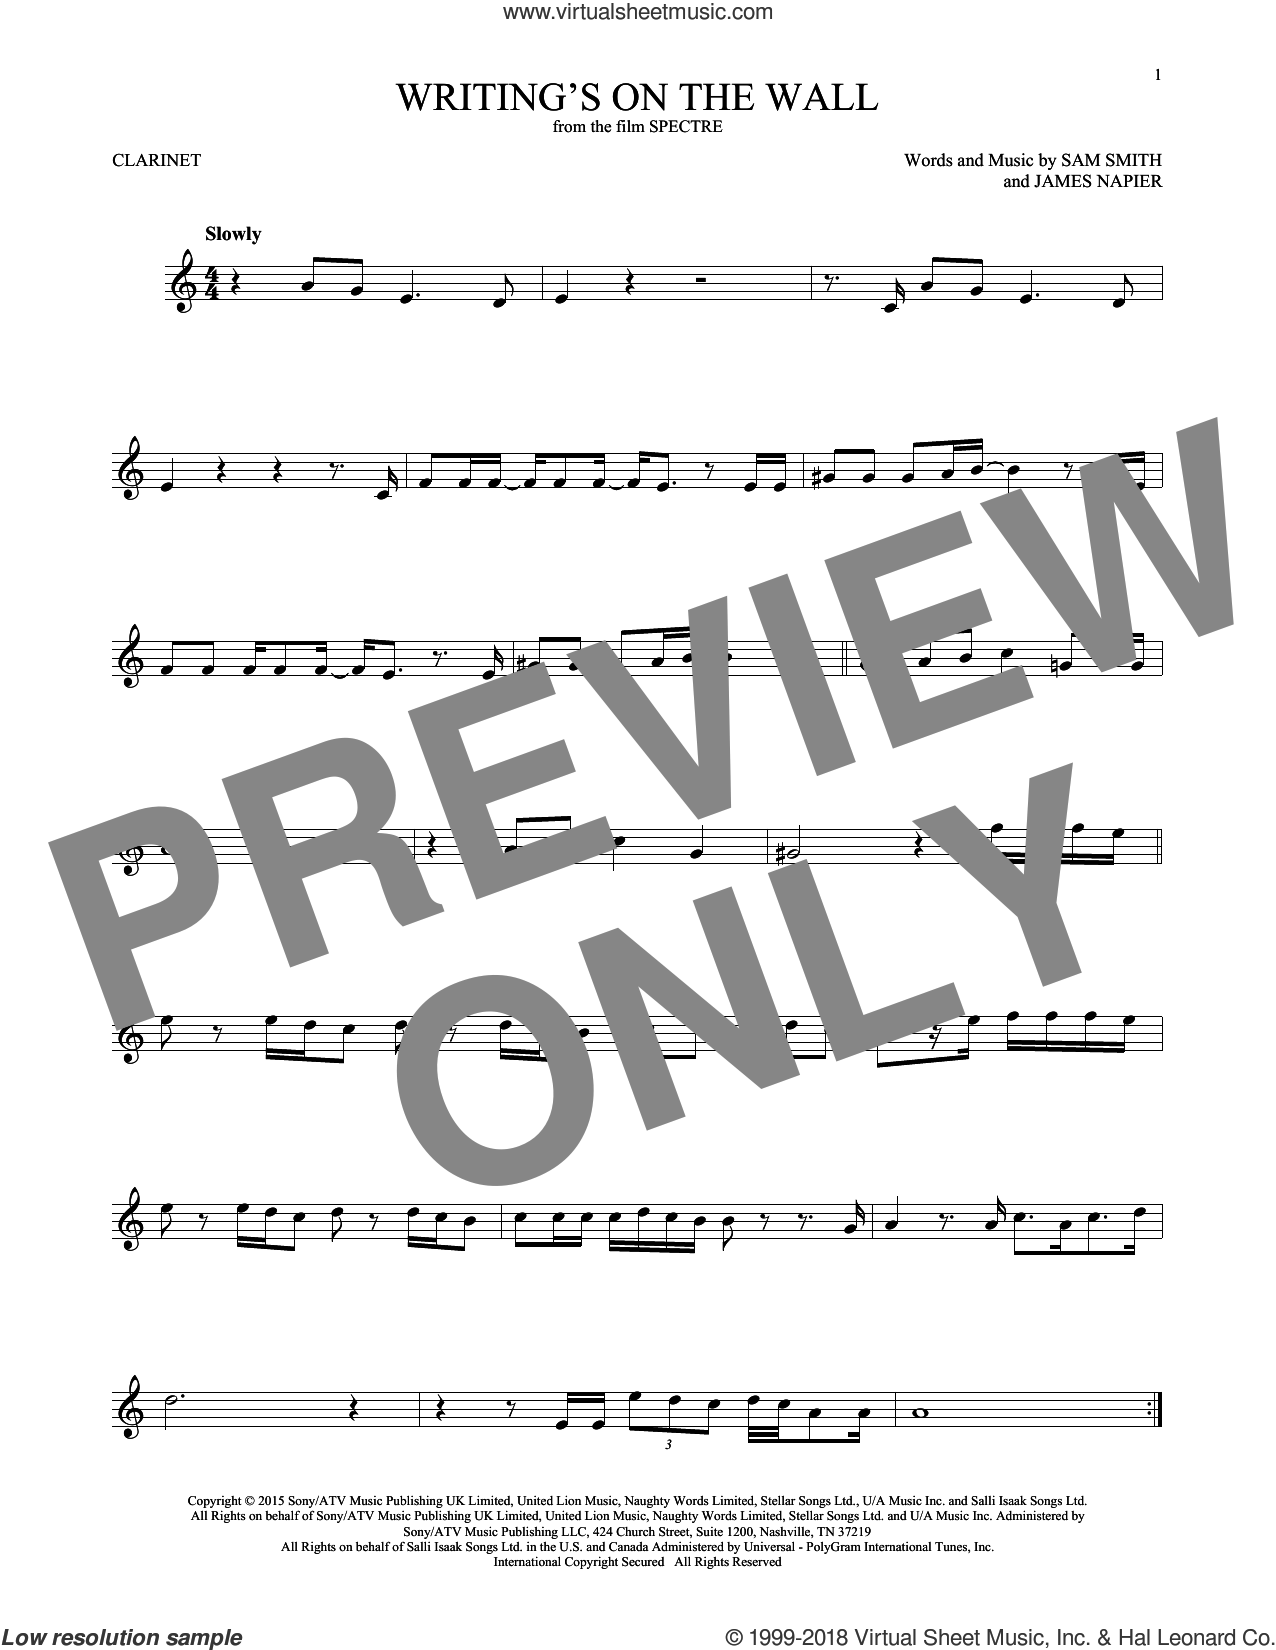 Writing's On The Wall sheet music for clarinet solo by Sam Smith and James Napier, intermediate skill level